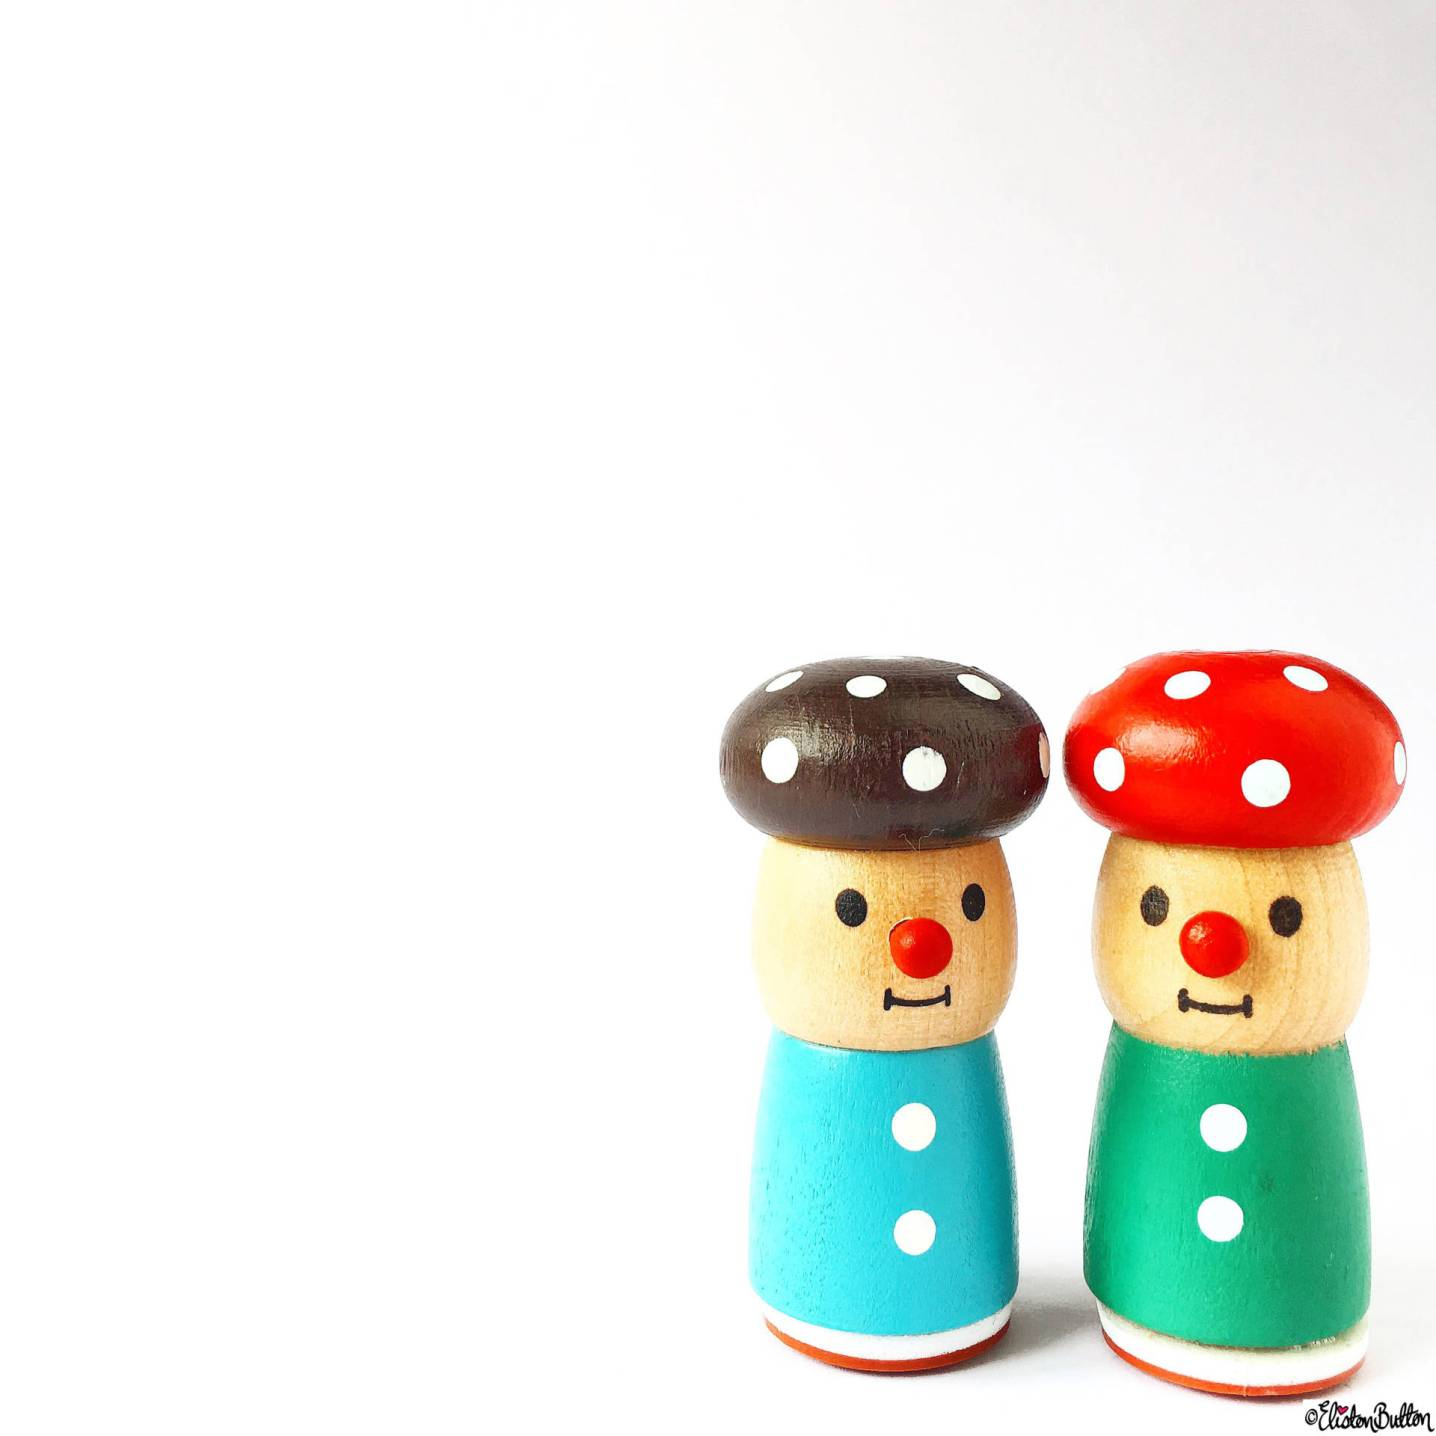 Day 08 - Pair - Little Toadstool Stamp People - Photo-a-Day – April 2016 at www.elistonbutton.com - Eliston Button - That Crafty Kid – Art, Design, Craft & Adventure.